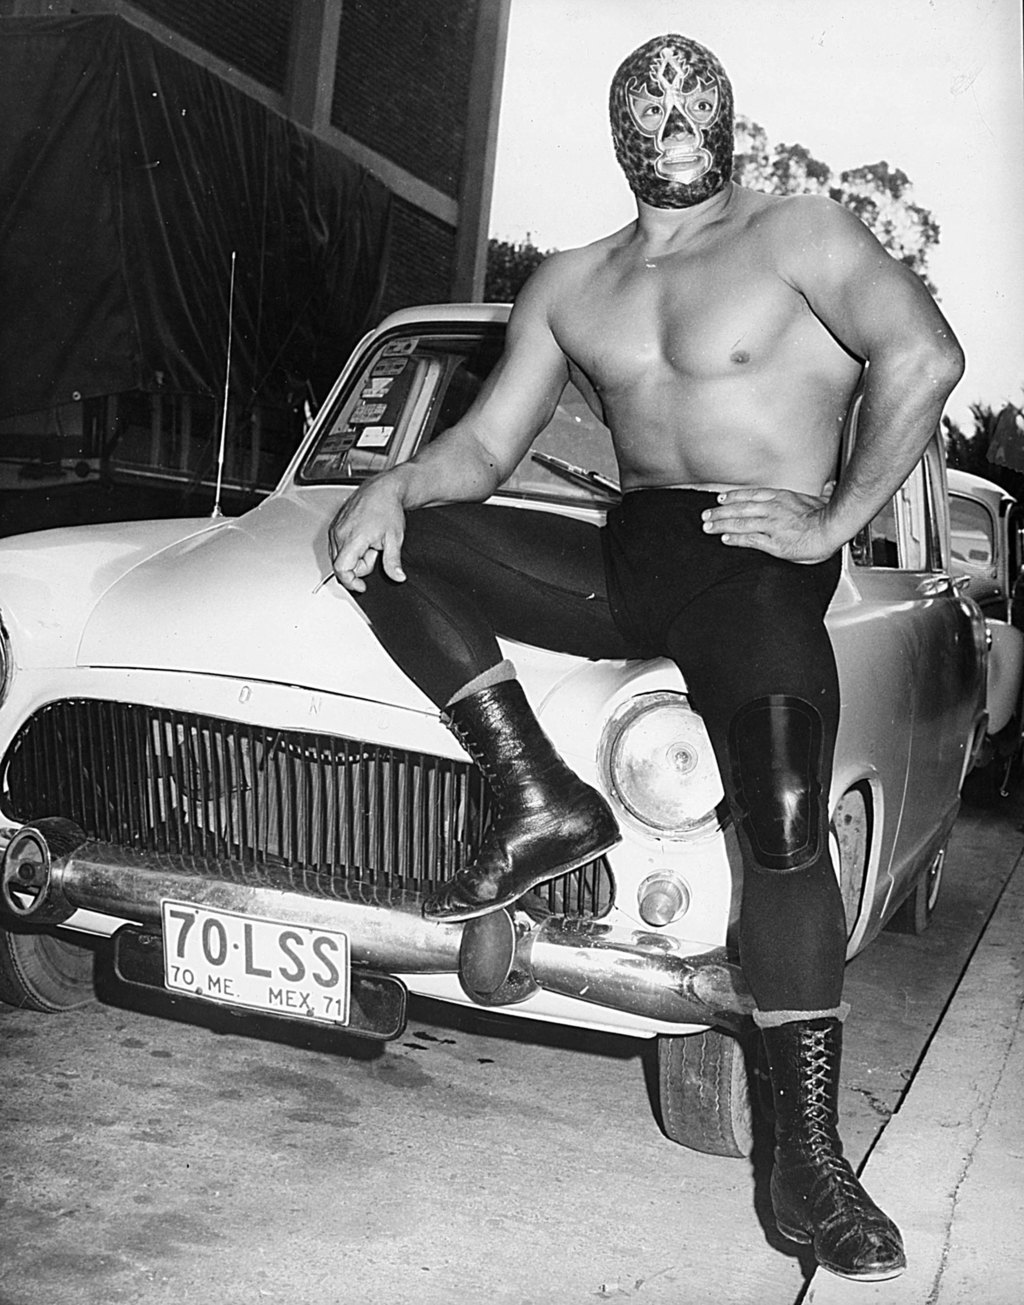 """Mil Máscaras became a superstar outside the squared circle and continued the tradition of """"Masked Cinema"""" like his counterparts El Santo and Blue Demon."""